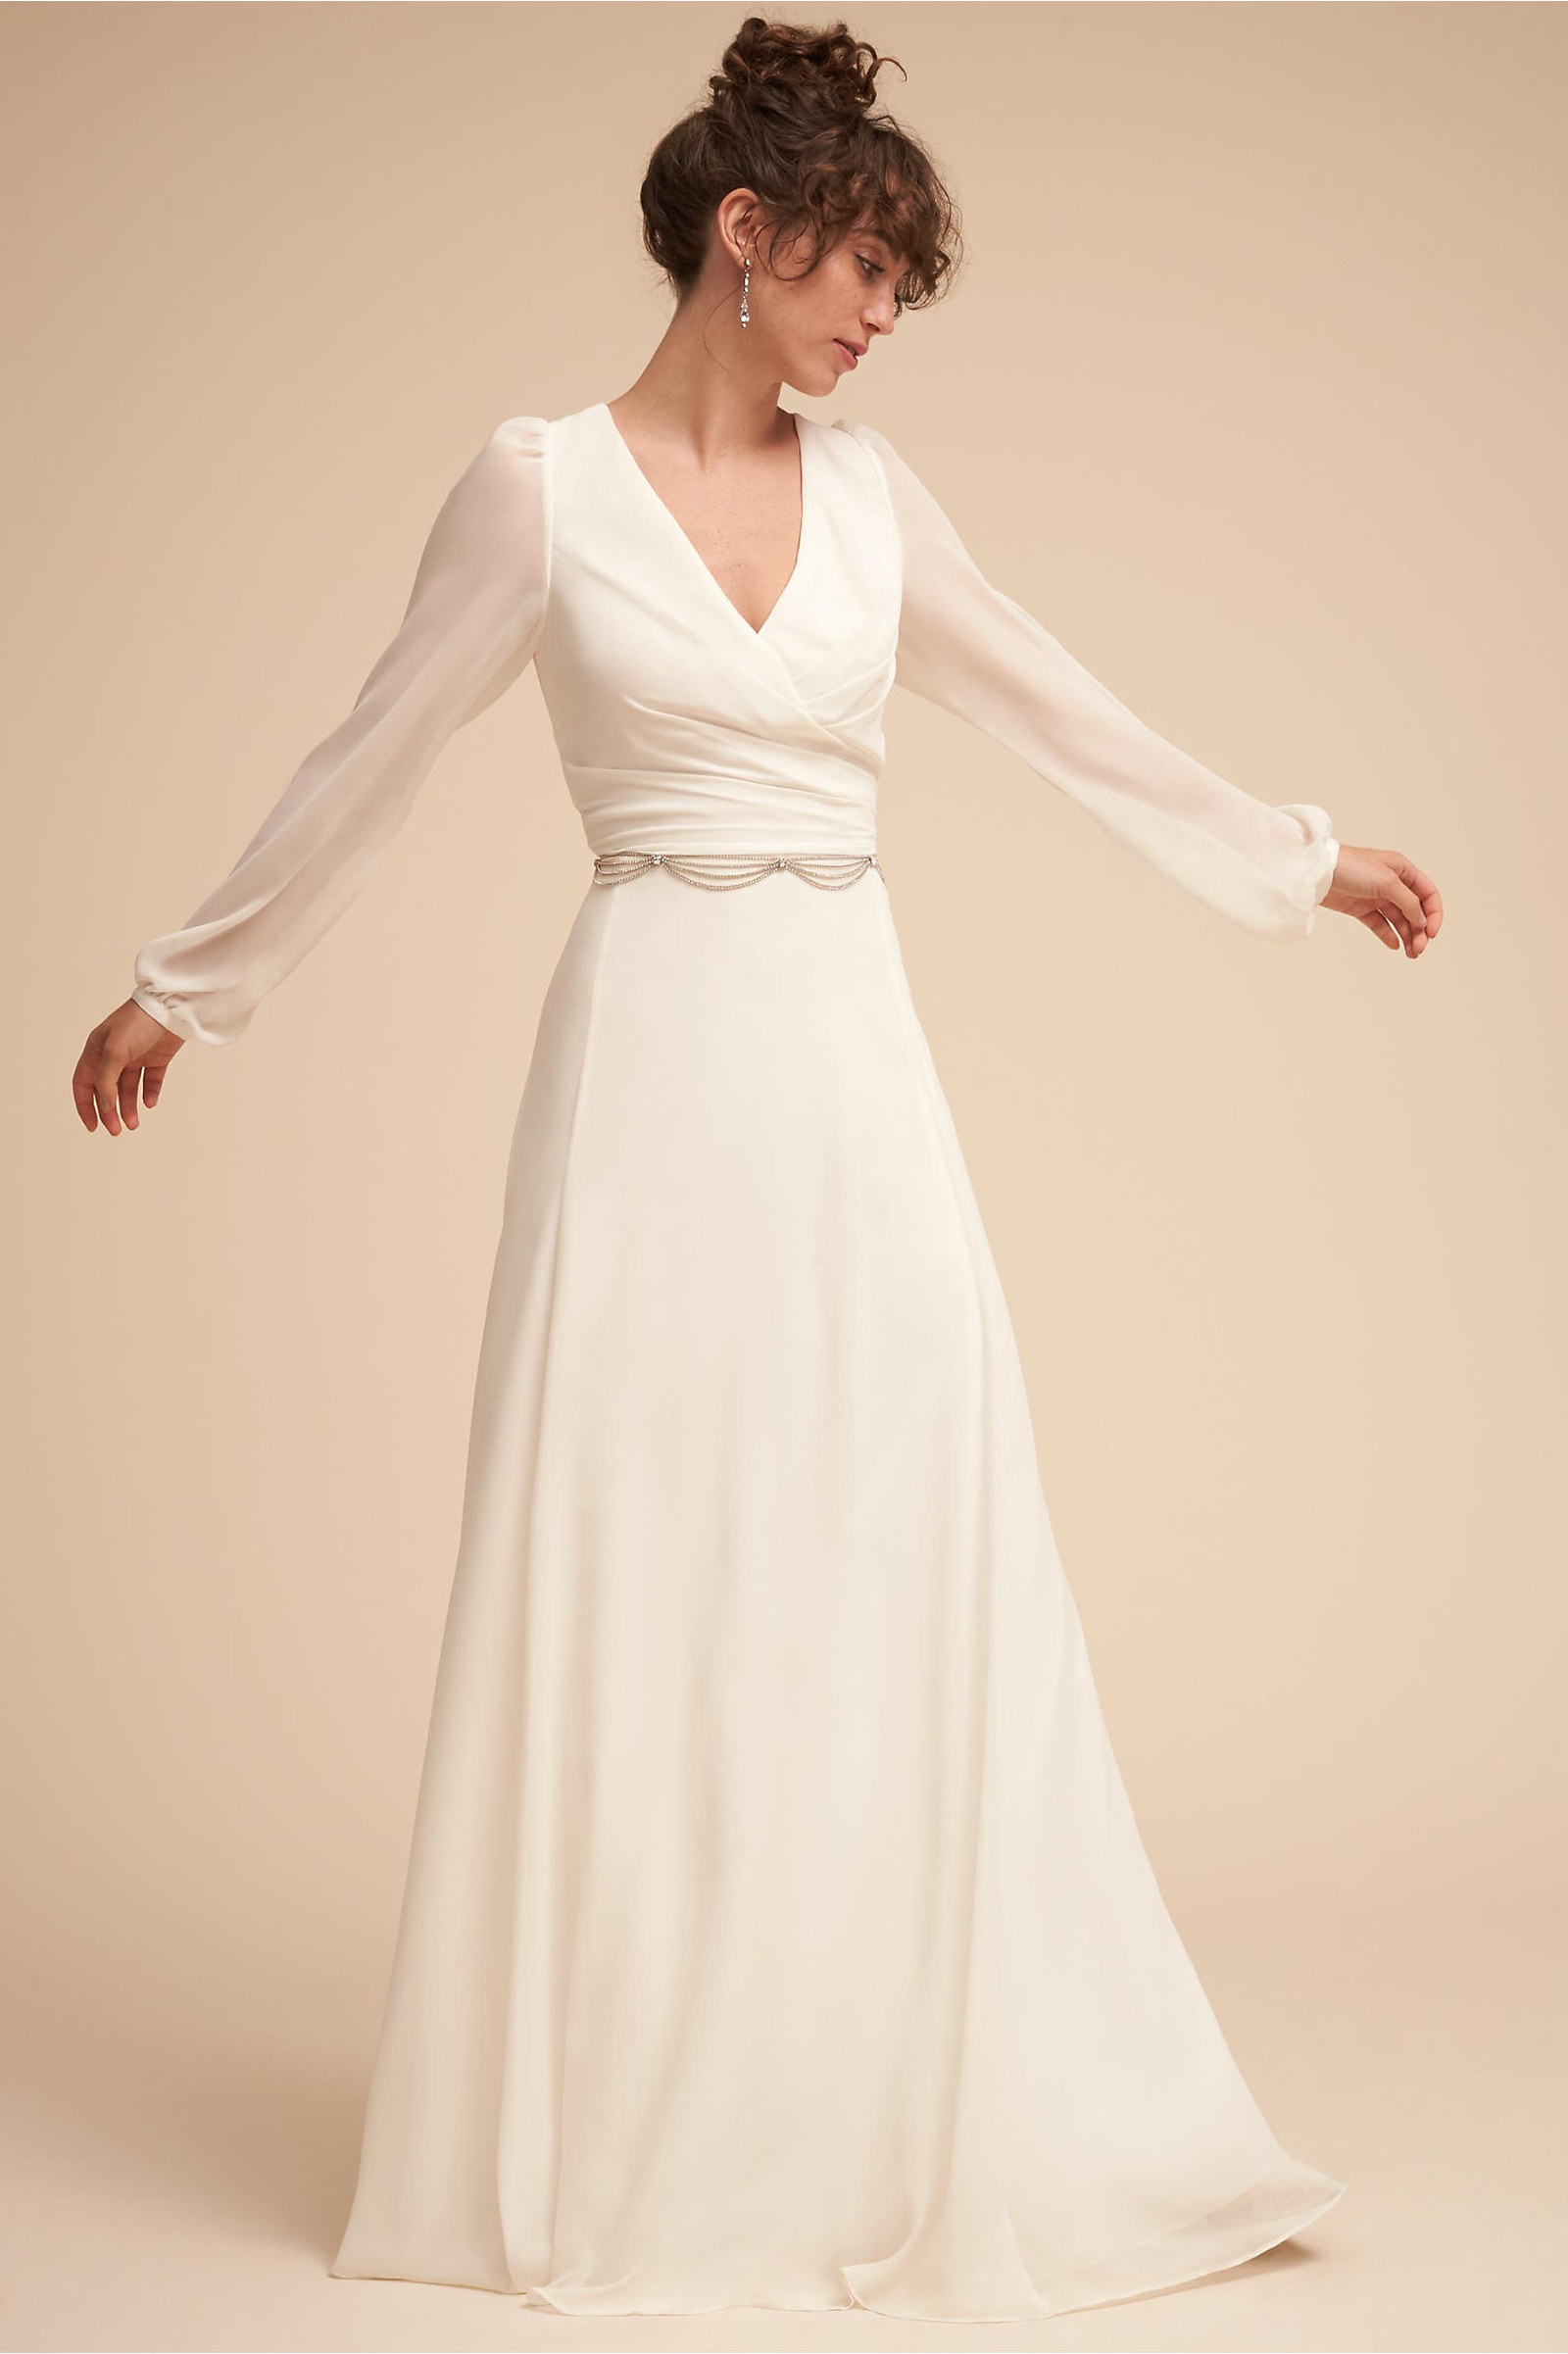 de9dc4447cc86 Bhldn: AKA the wedding shop where boring dresses are as unwelcome as vowels.